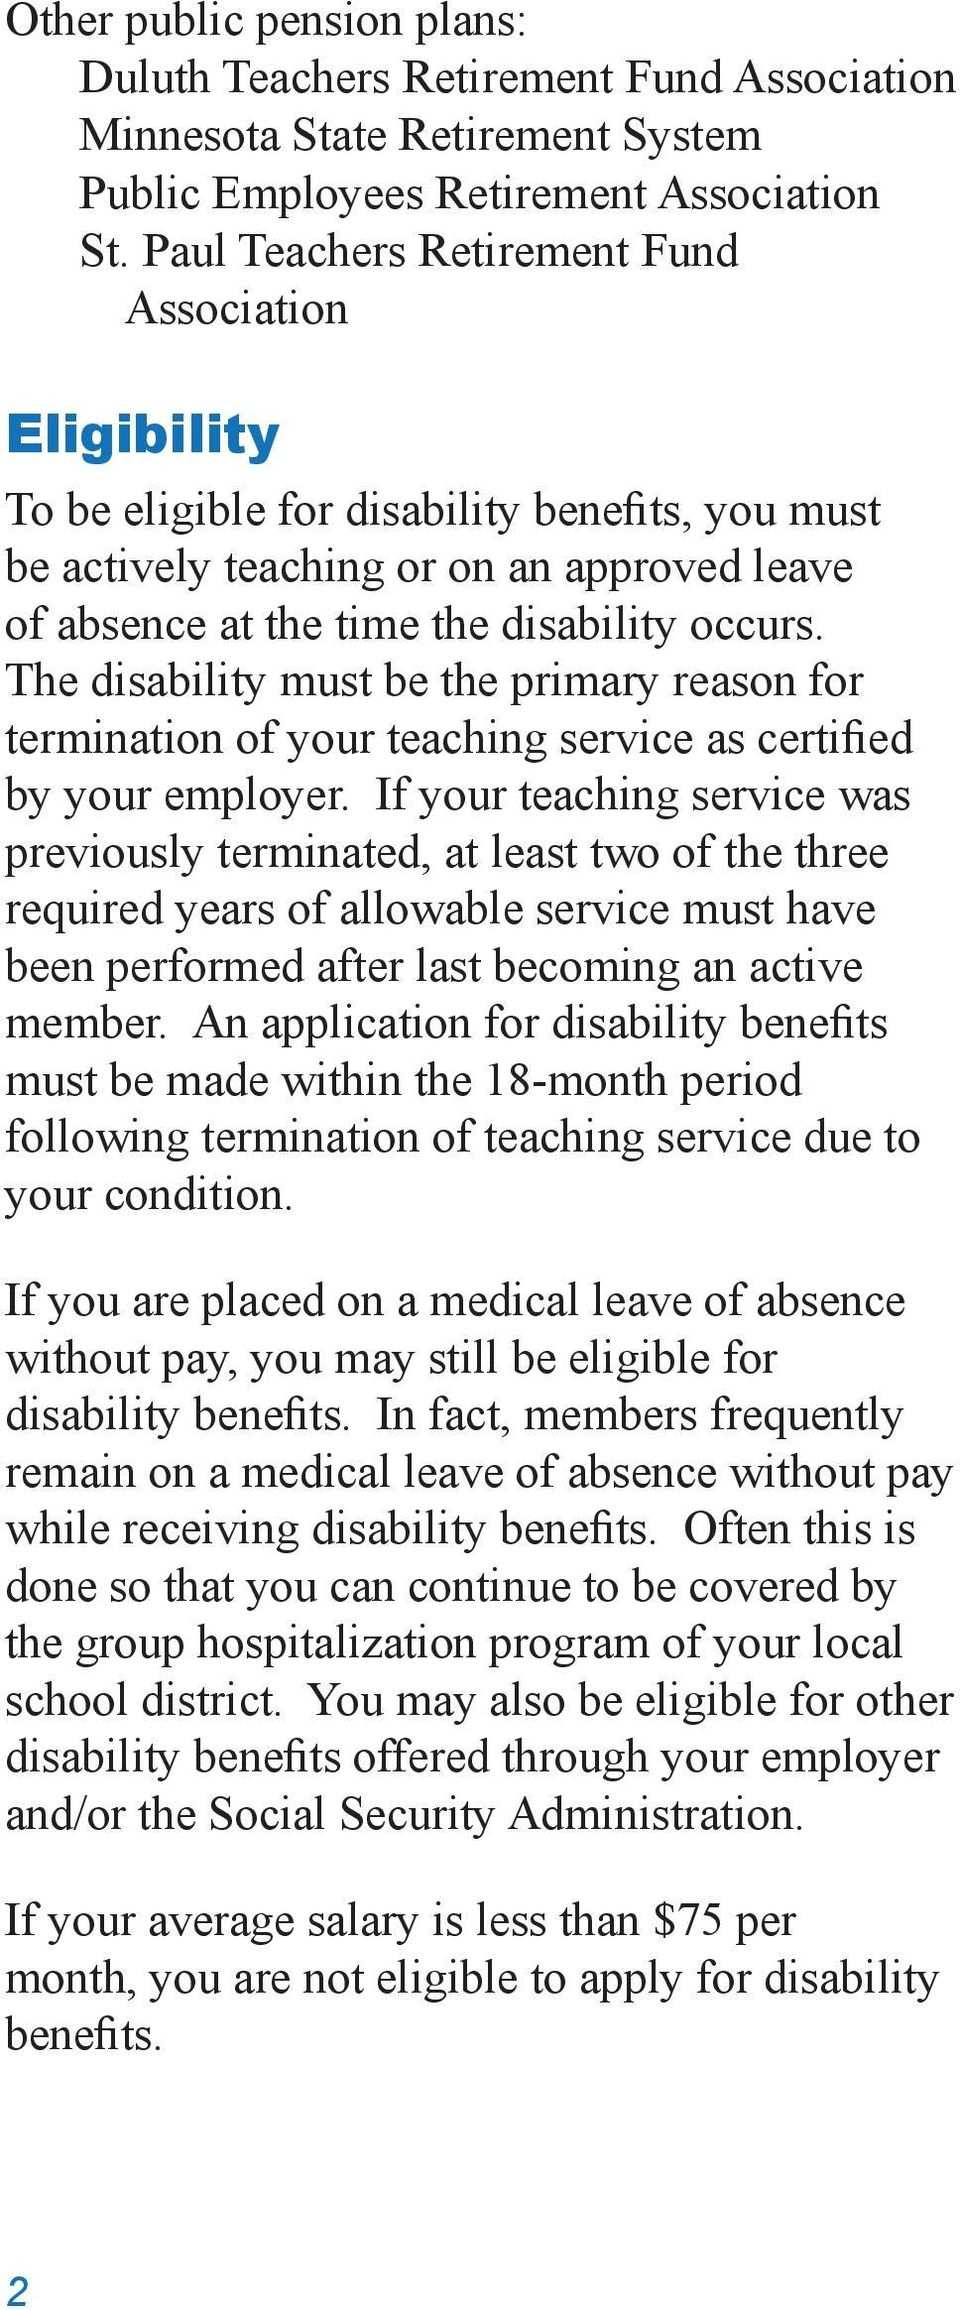 The disability must be the primary reason for termination of your teaching service as certified by your employer.